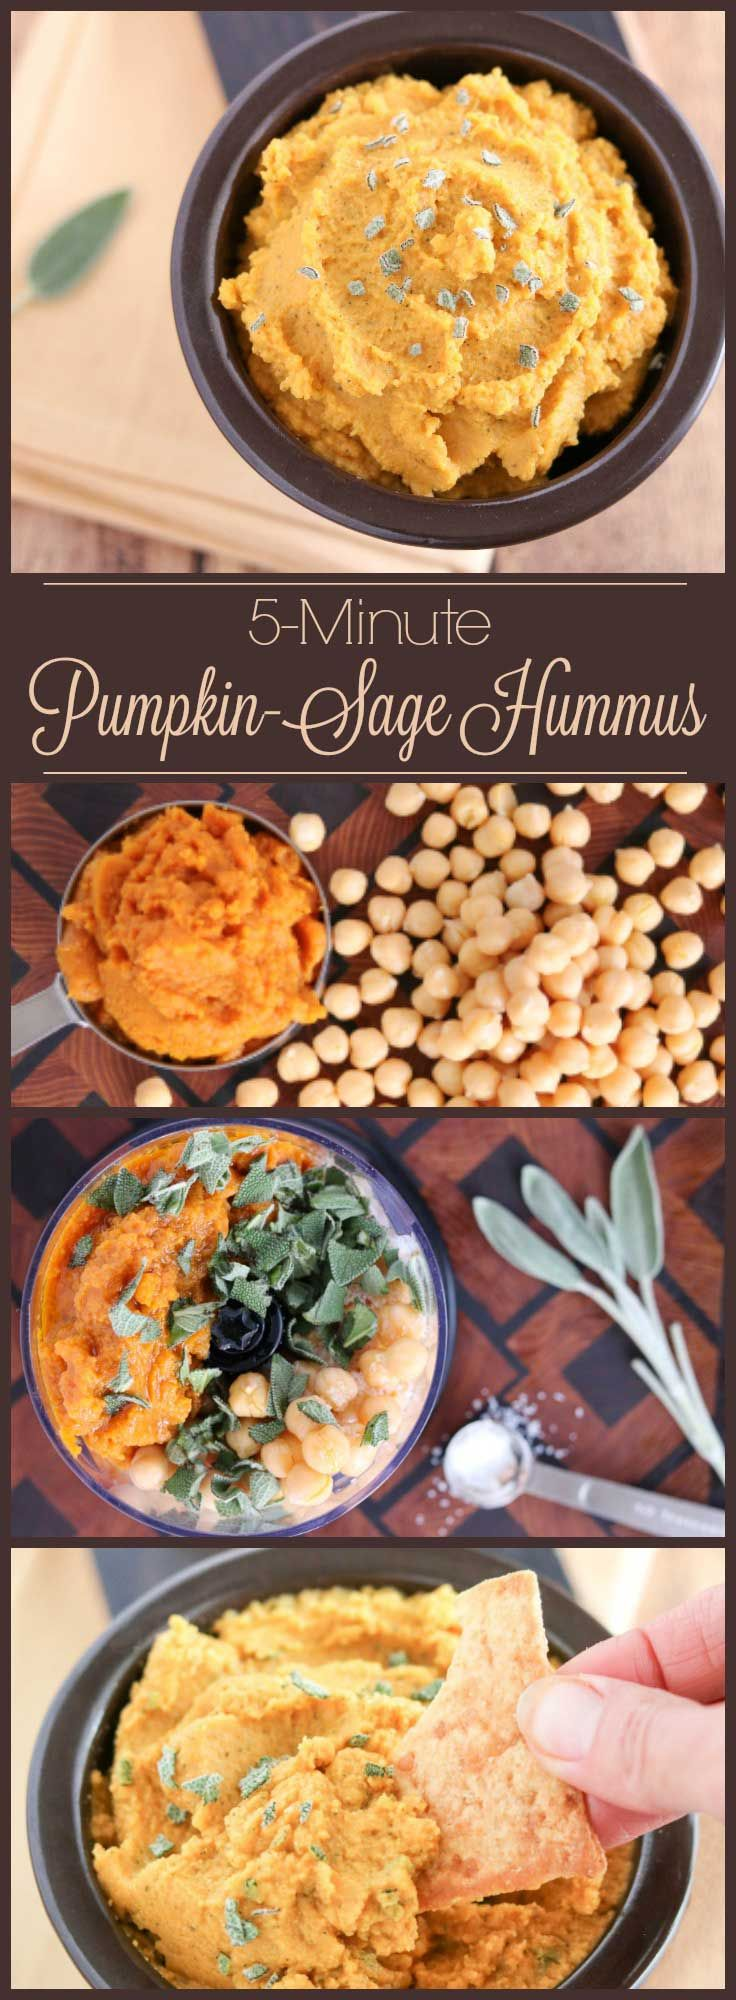 Thanksgiving Appetizer - 5 ingredients, ready in 5 minutes! This delicious Savory Pumpkin Hummus is filled with the rich, comforting flavors of pumpkin and sage. It's an ideal Halloween snack, Thanksgiving appetizer, or holiday hors d'oeuvre. A quick, healthy appetizer recipe that can even be made ahead! Great for parties, and for snacking – a healthy hummus recipe that's great anytime! If you're looking for pumpkin recipes, this is a must-try! | www.TwoHealthyKitchens.com